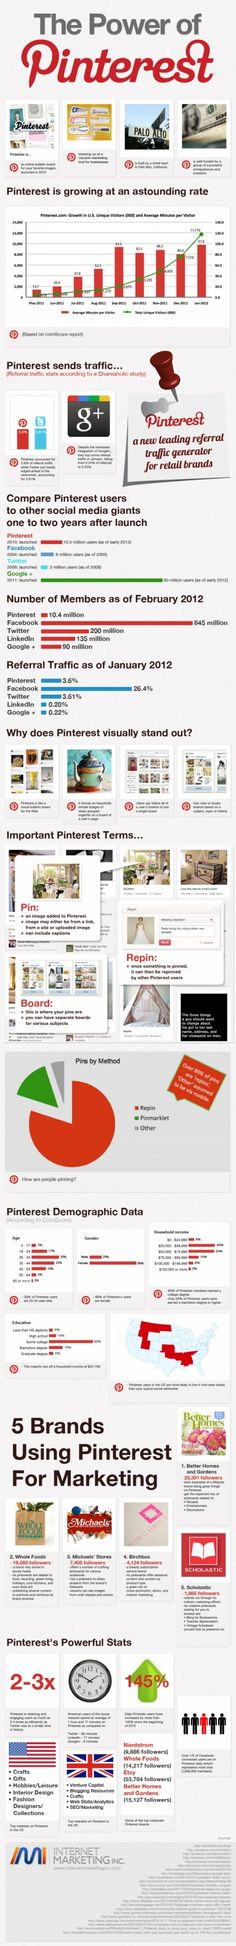 The Power of Pinterest!